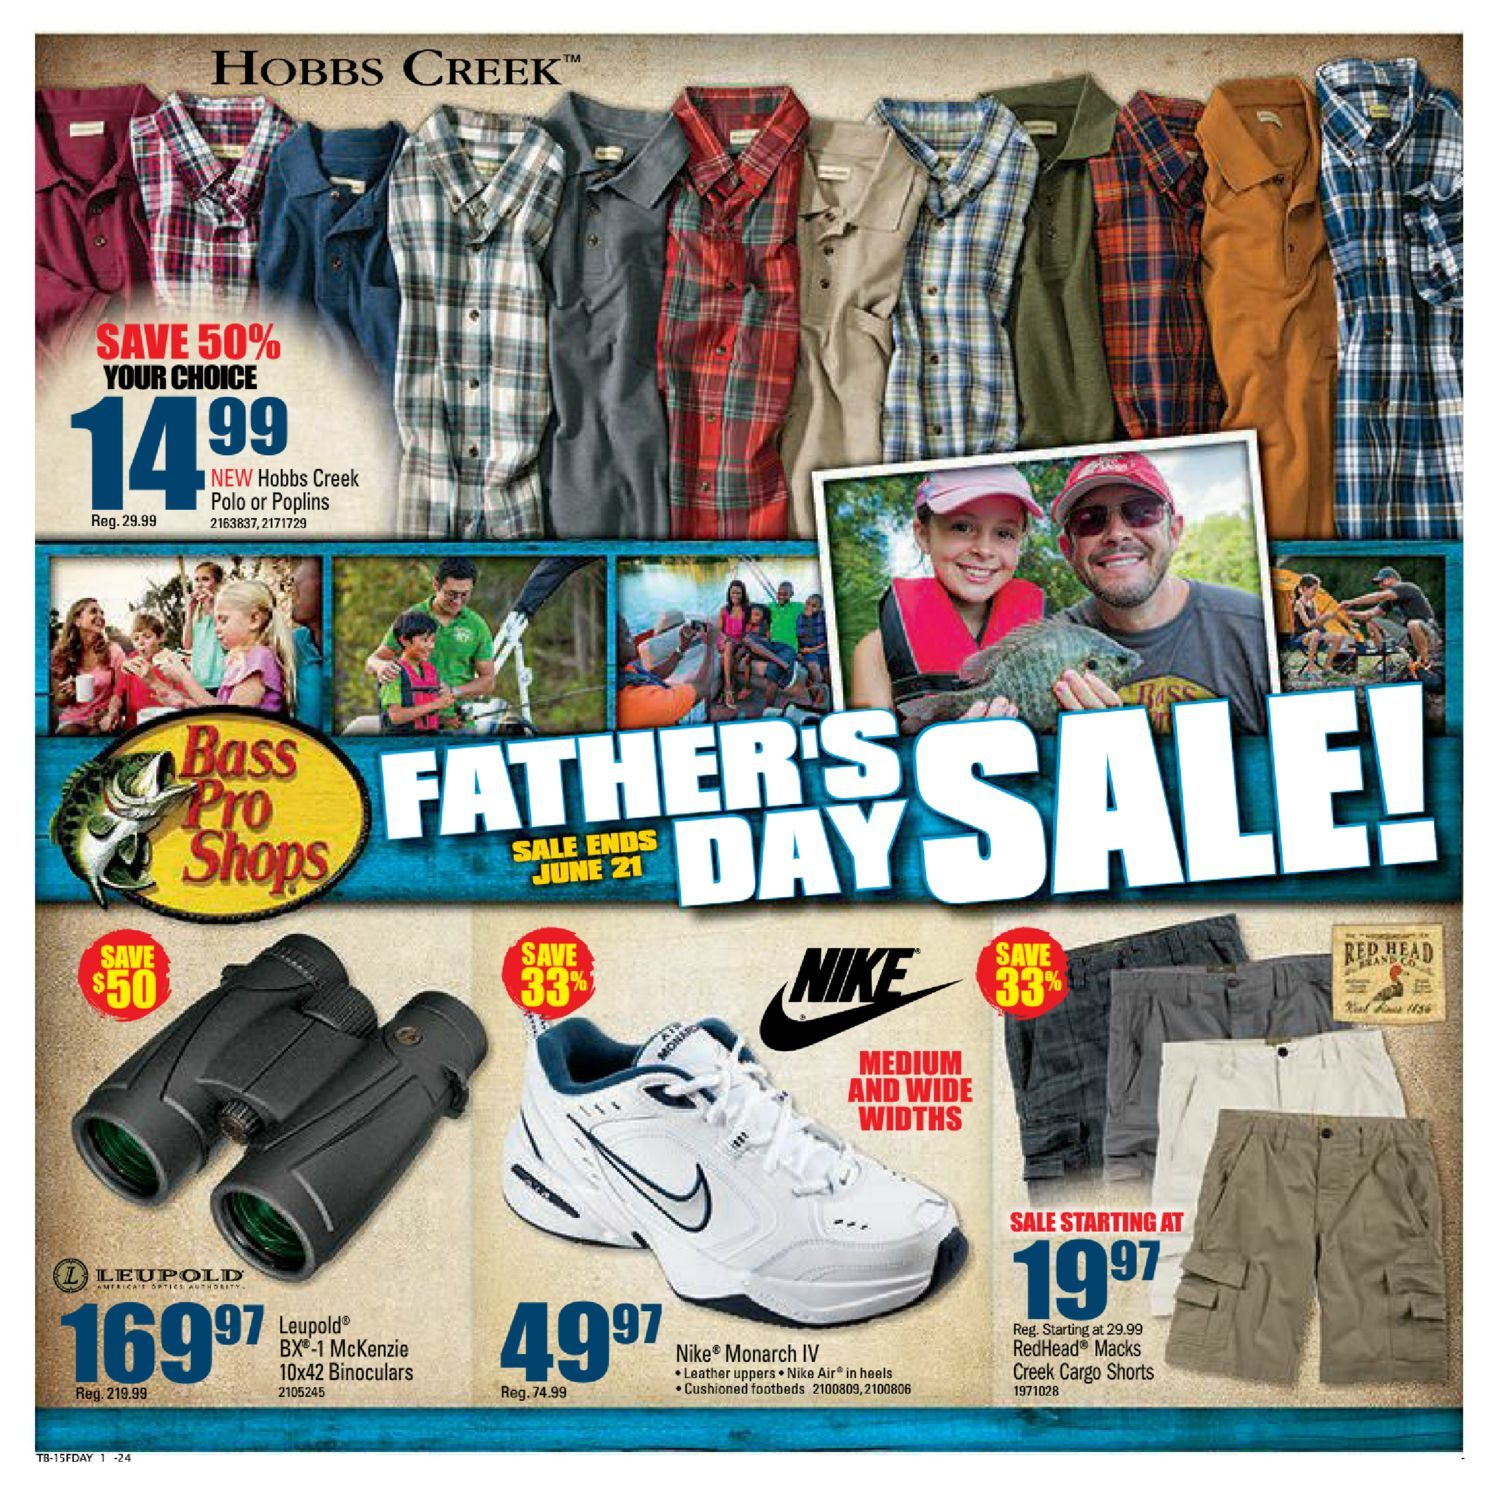 Bass Pro Shops Weekly Flyer - Father s Day Sale - Jun 8 – 21 -  RedFlagDeals.com 9e5d229c2